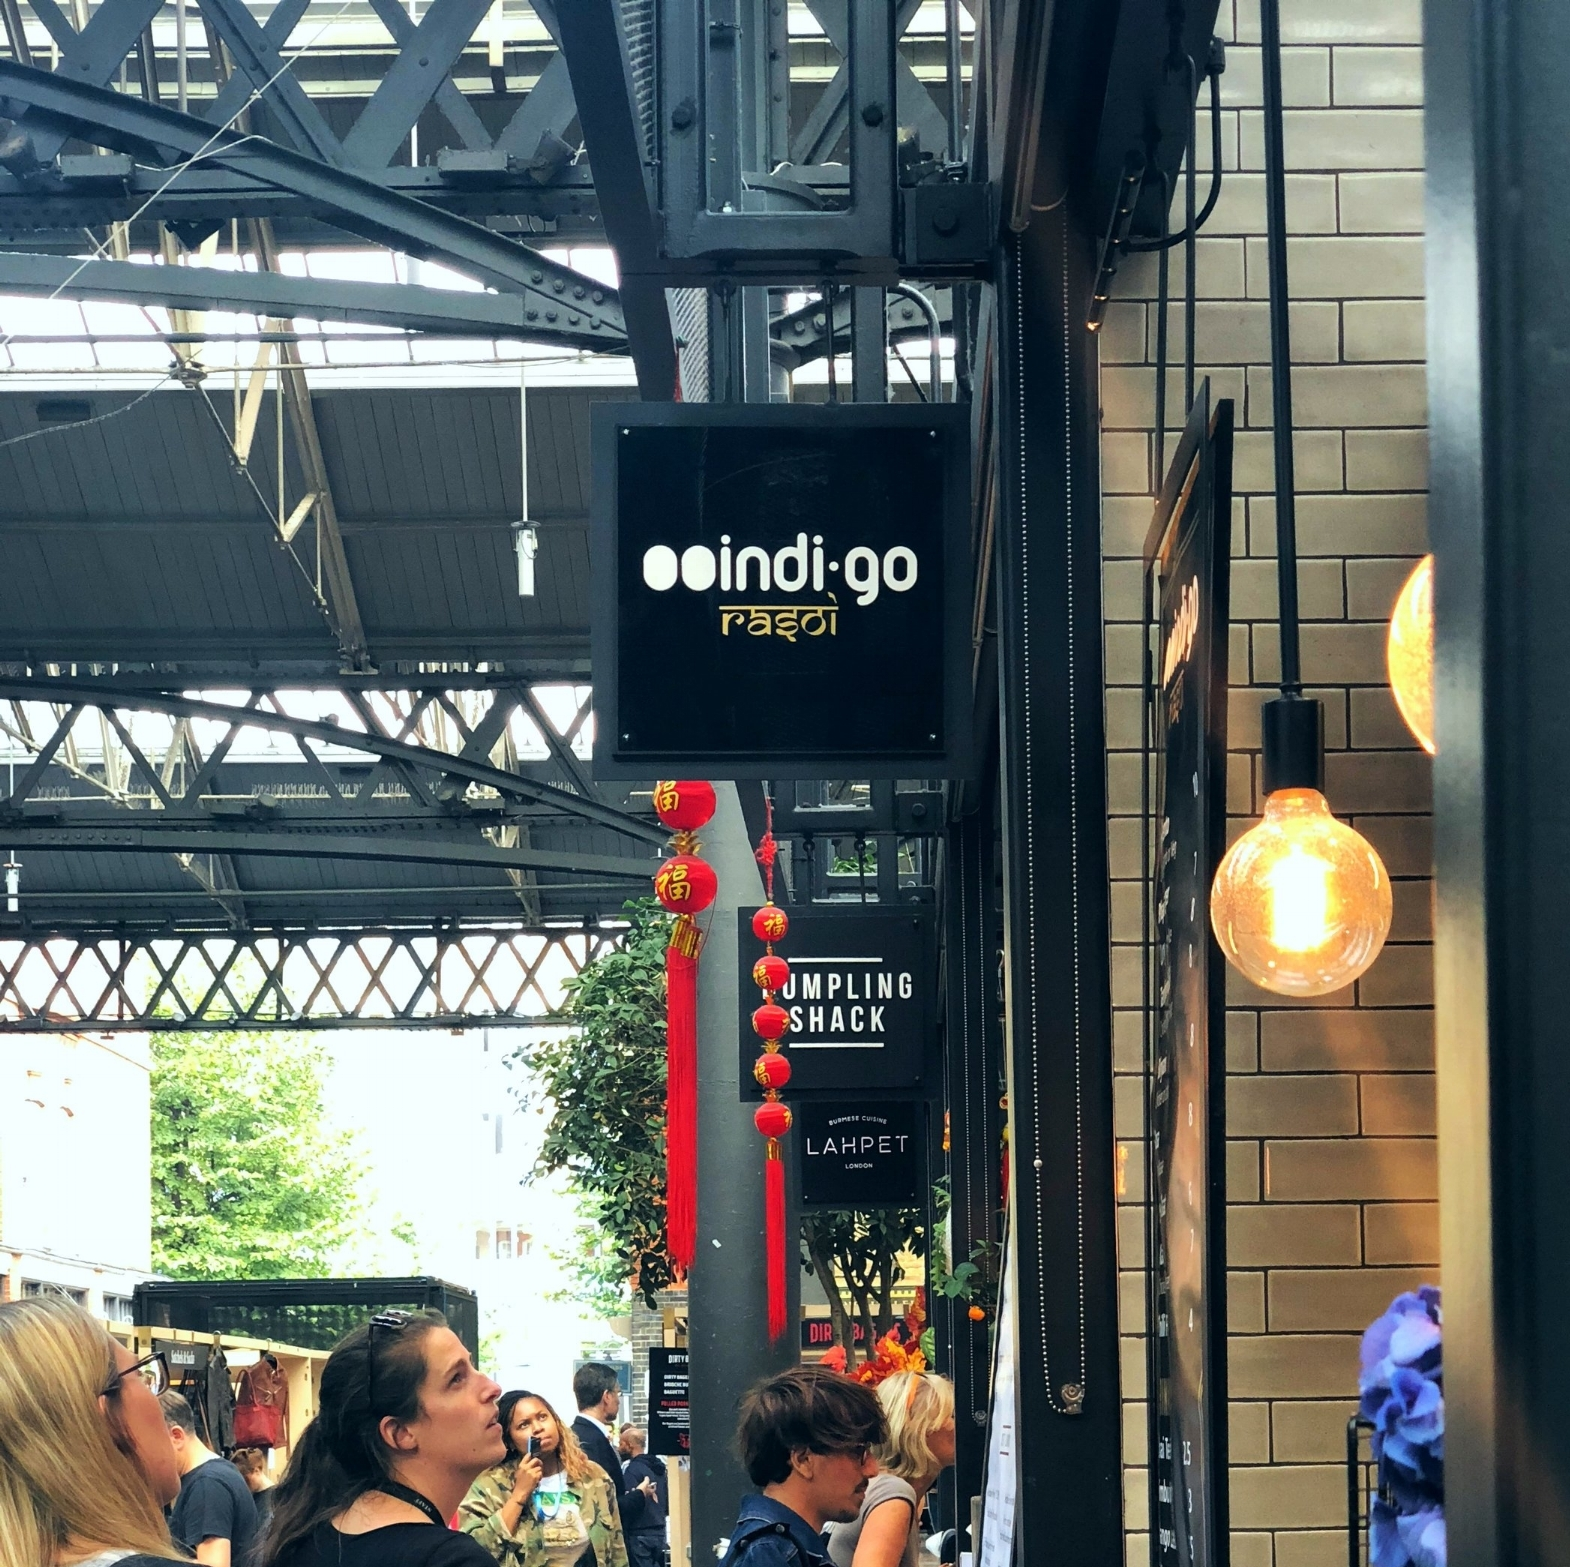 Indigo: One of the countless food kiosks in Spitalfields Market. The food was a 10 out of 10